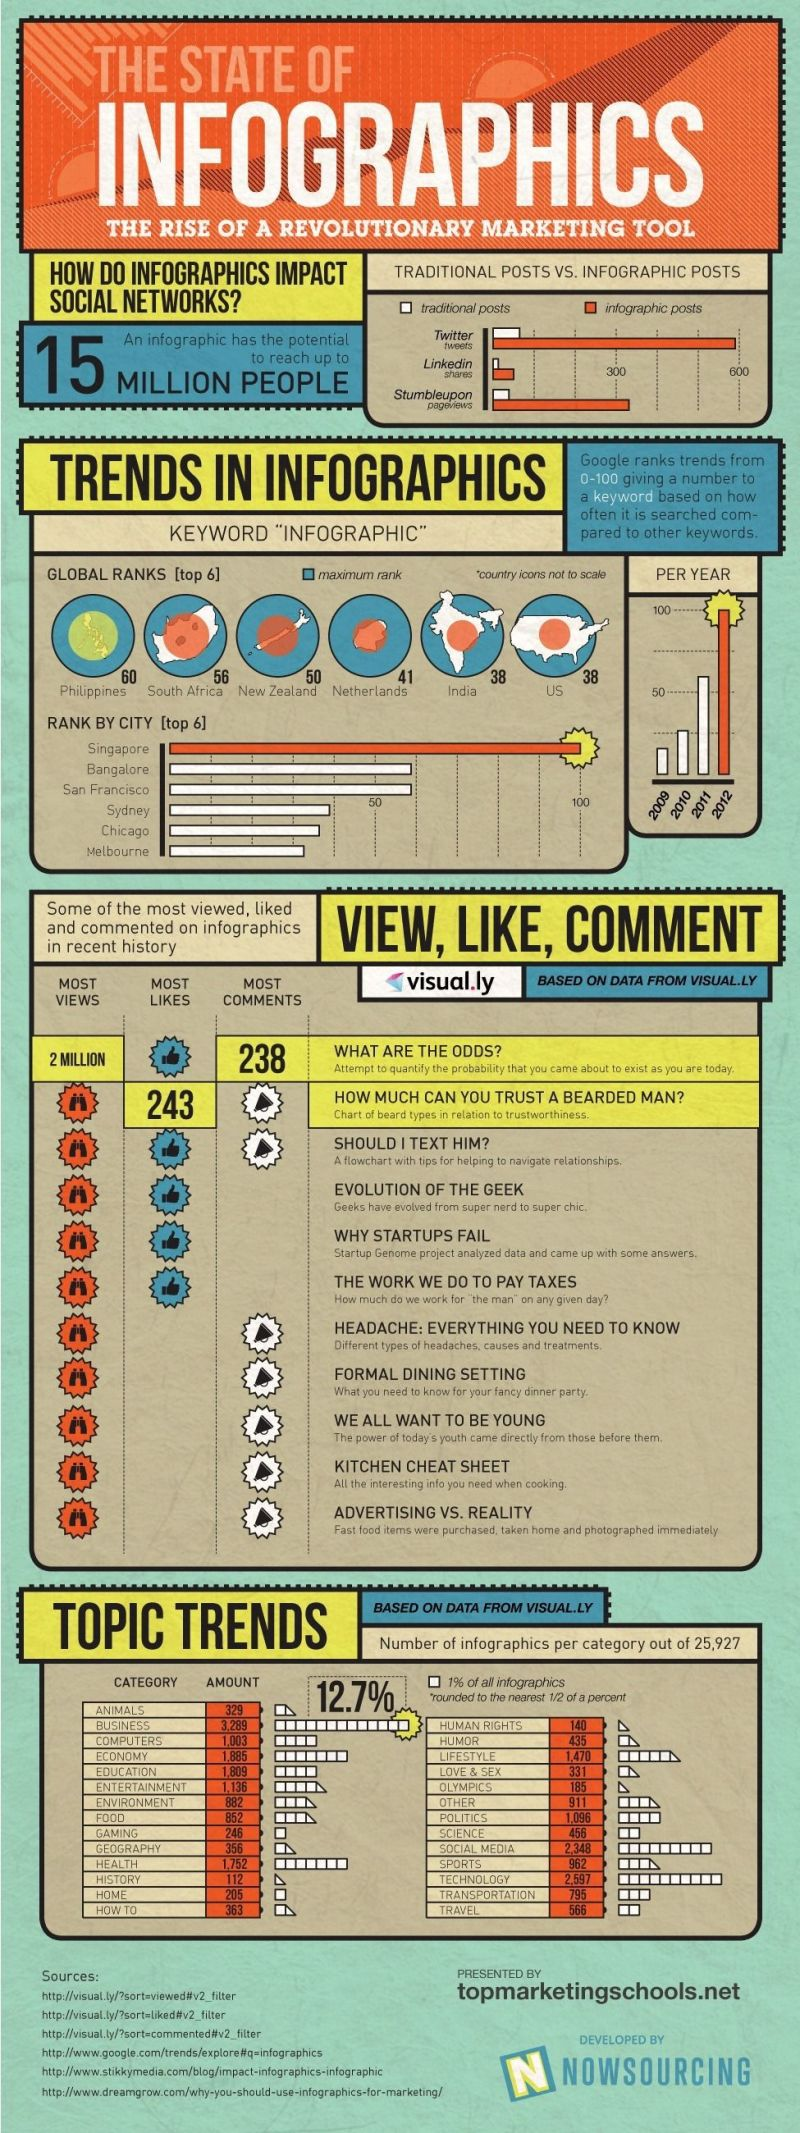 Infographic - The State Of Infographics